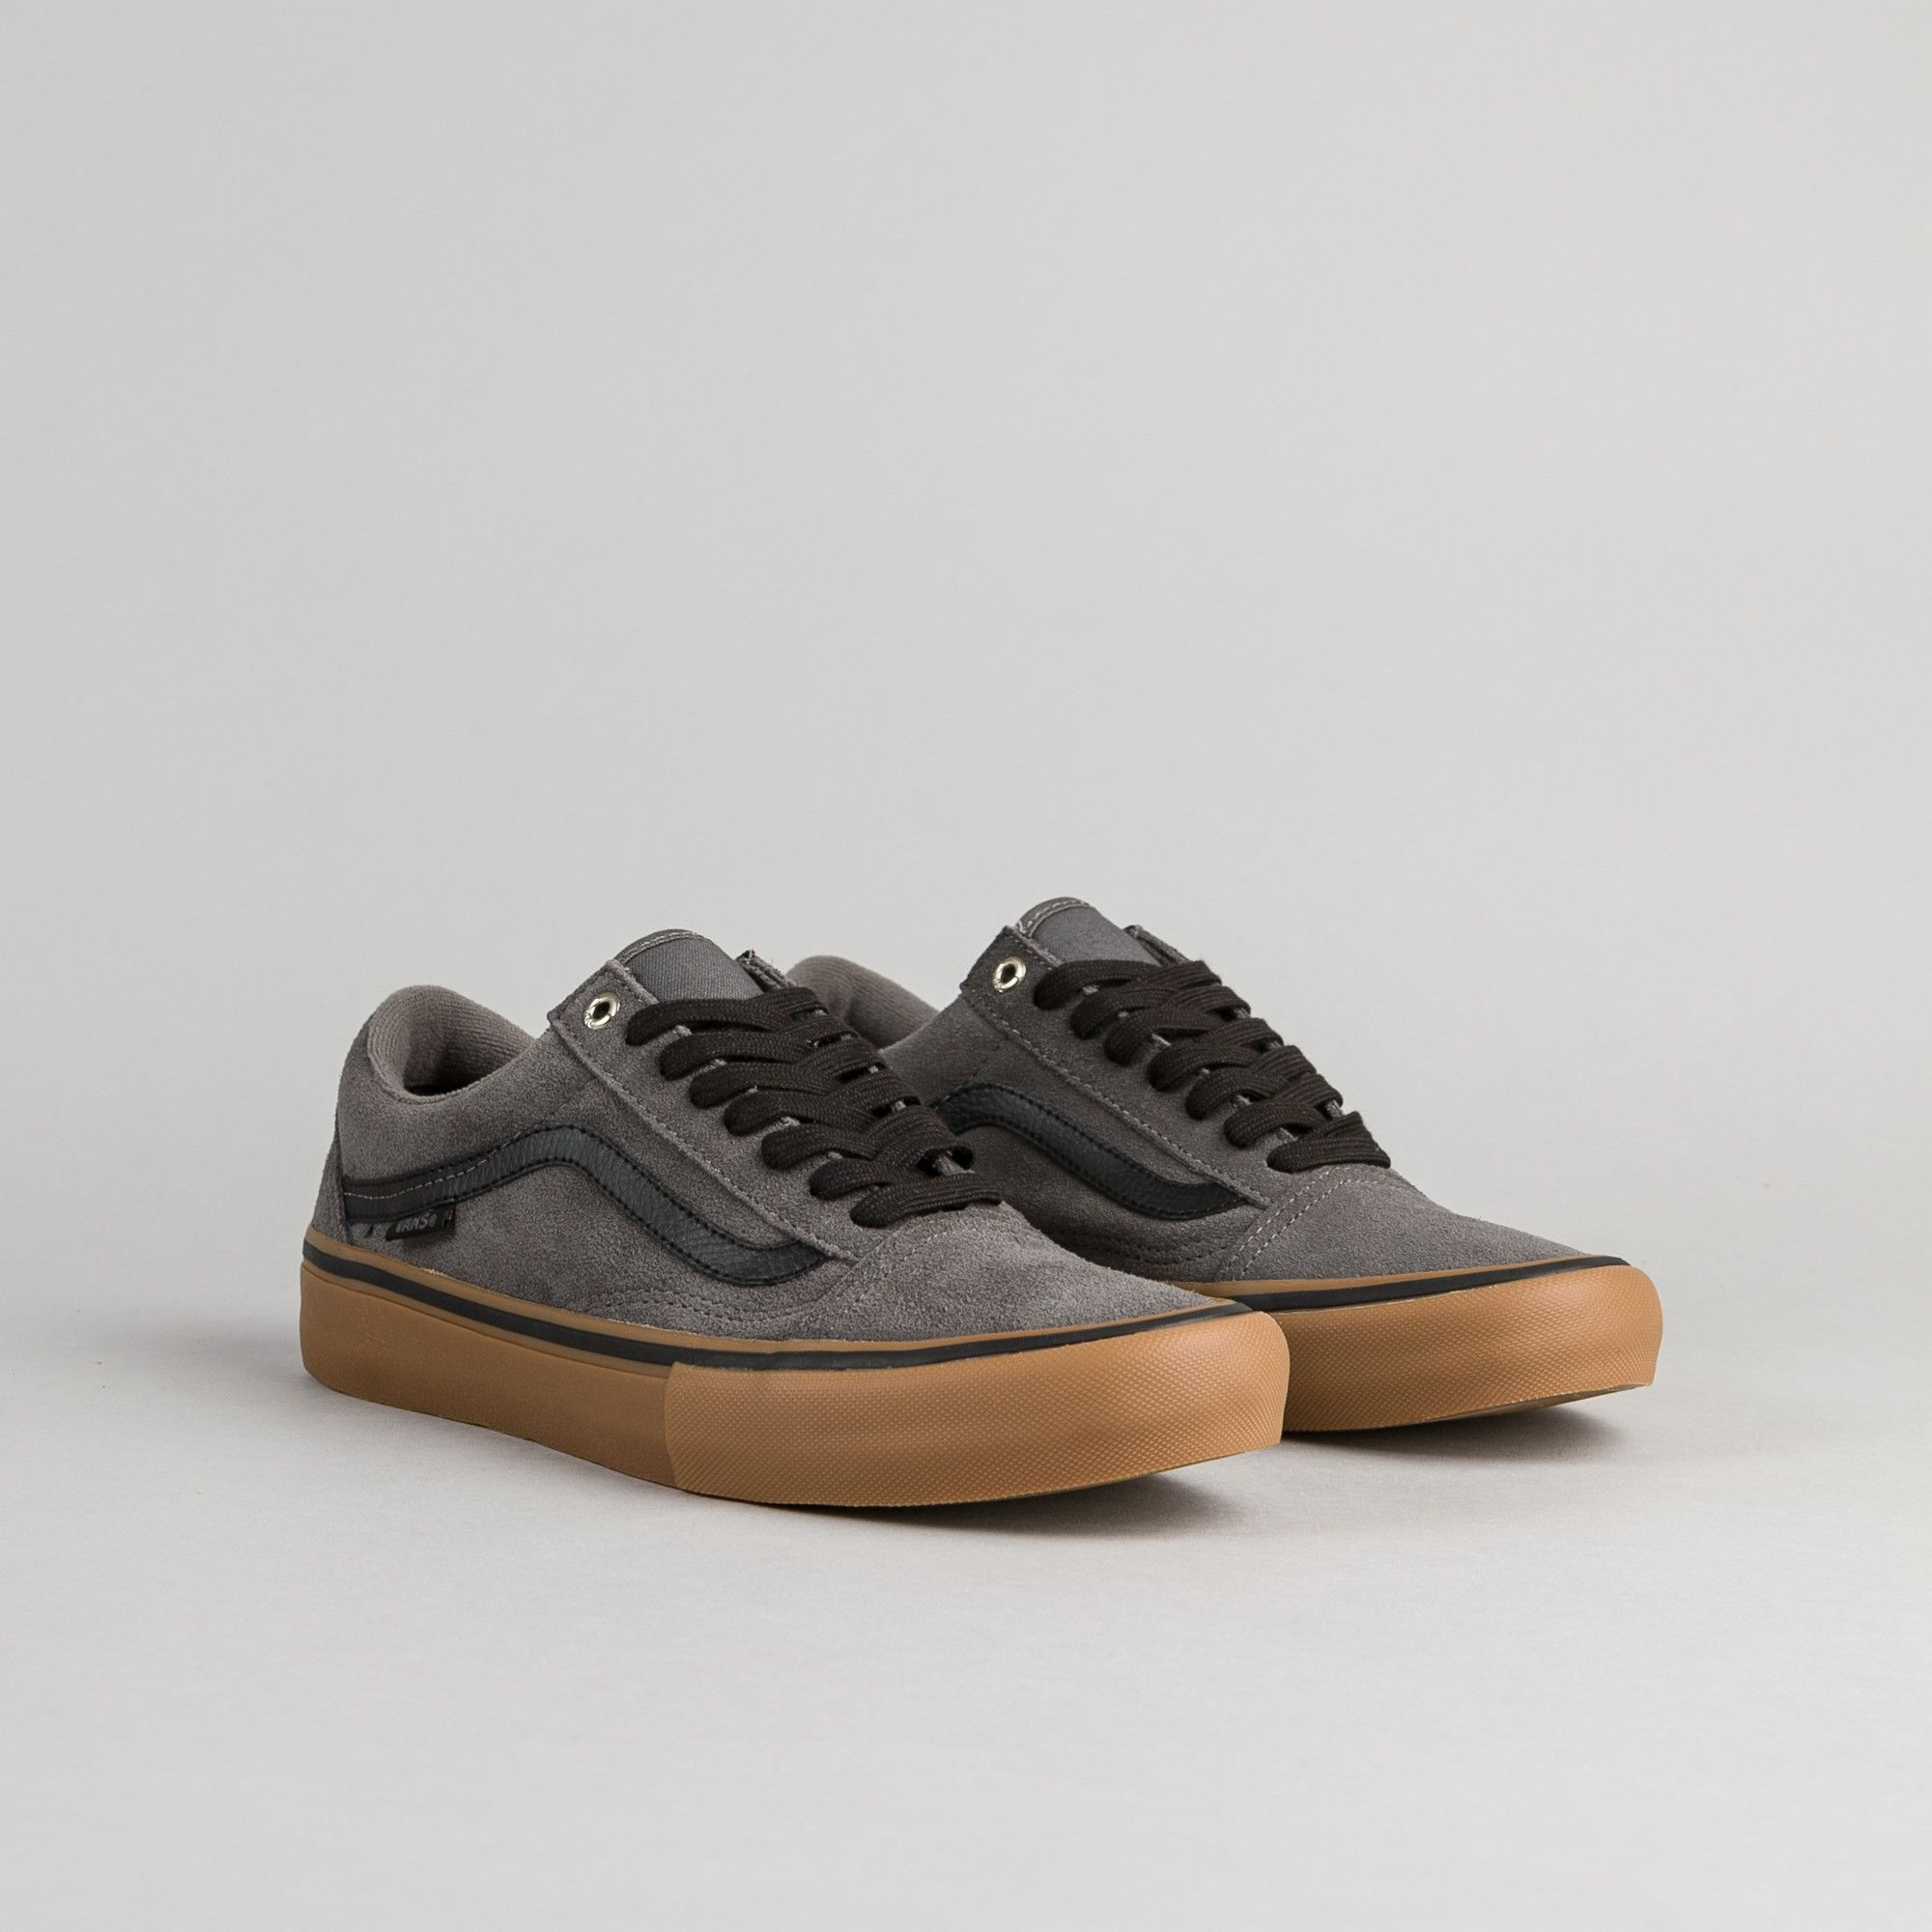 vans grey old skool gum sole